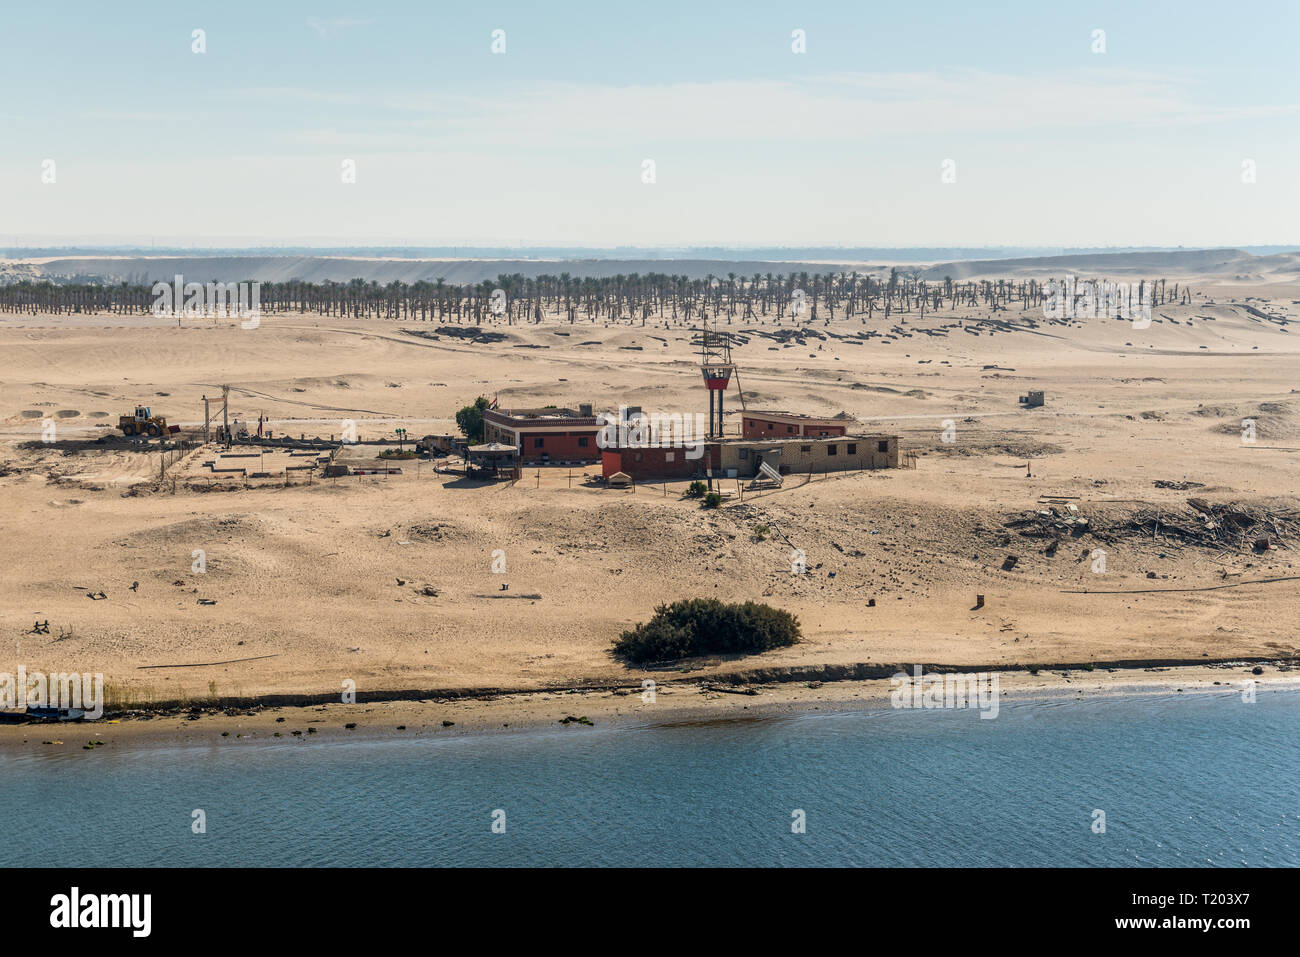 Ismailia, Egypt - November 5, 2017: Military watch tower and built on the shore of the Suez Canal near Ismailia, Egypt, Africa. - Stock Image